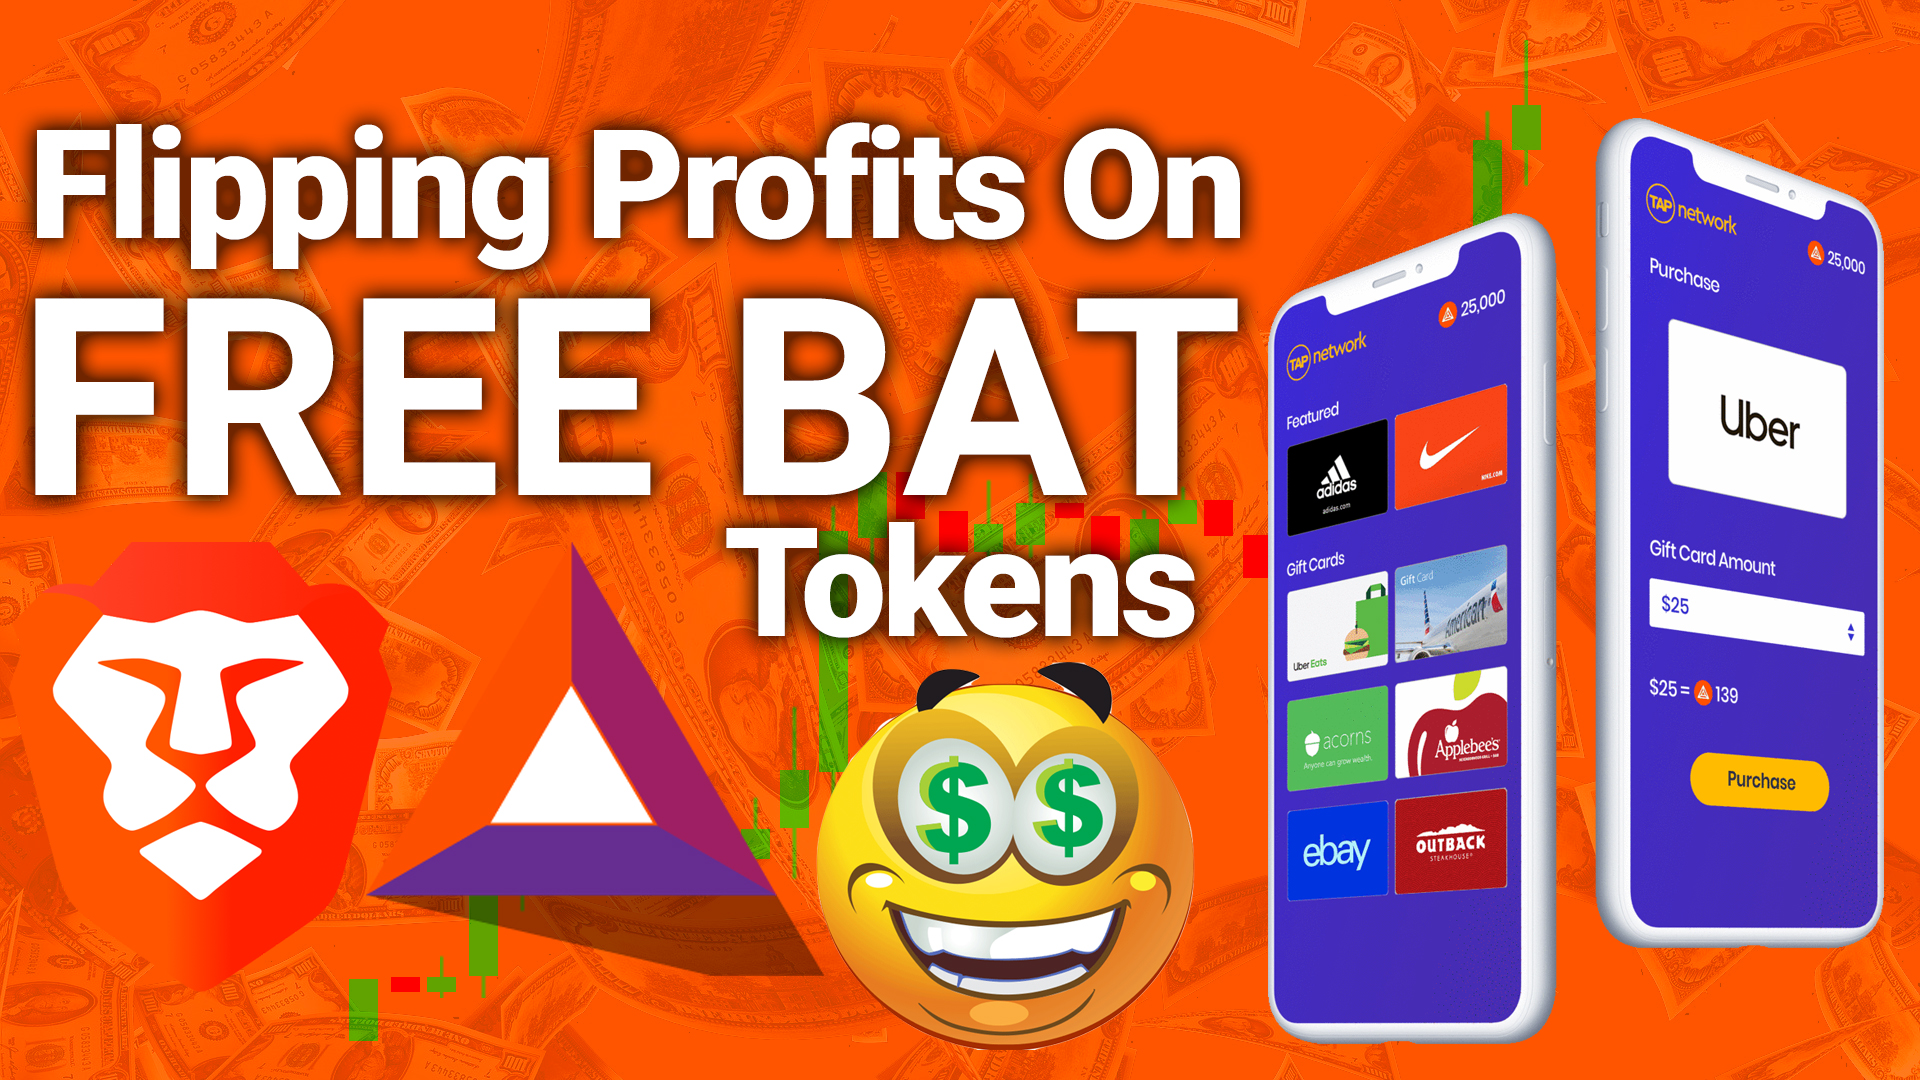 brave browser chrome best privacy bat basic attention token free ad network tap gift cards cryptocurrency